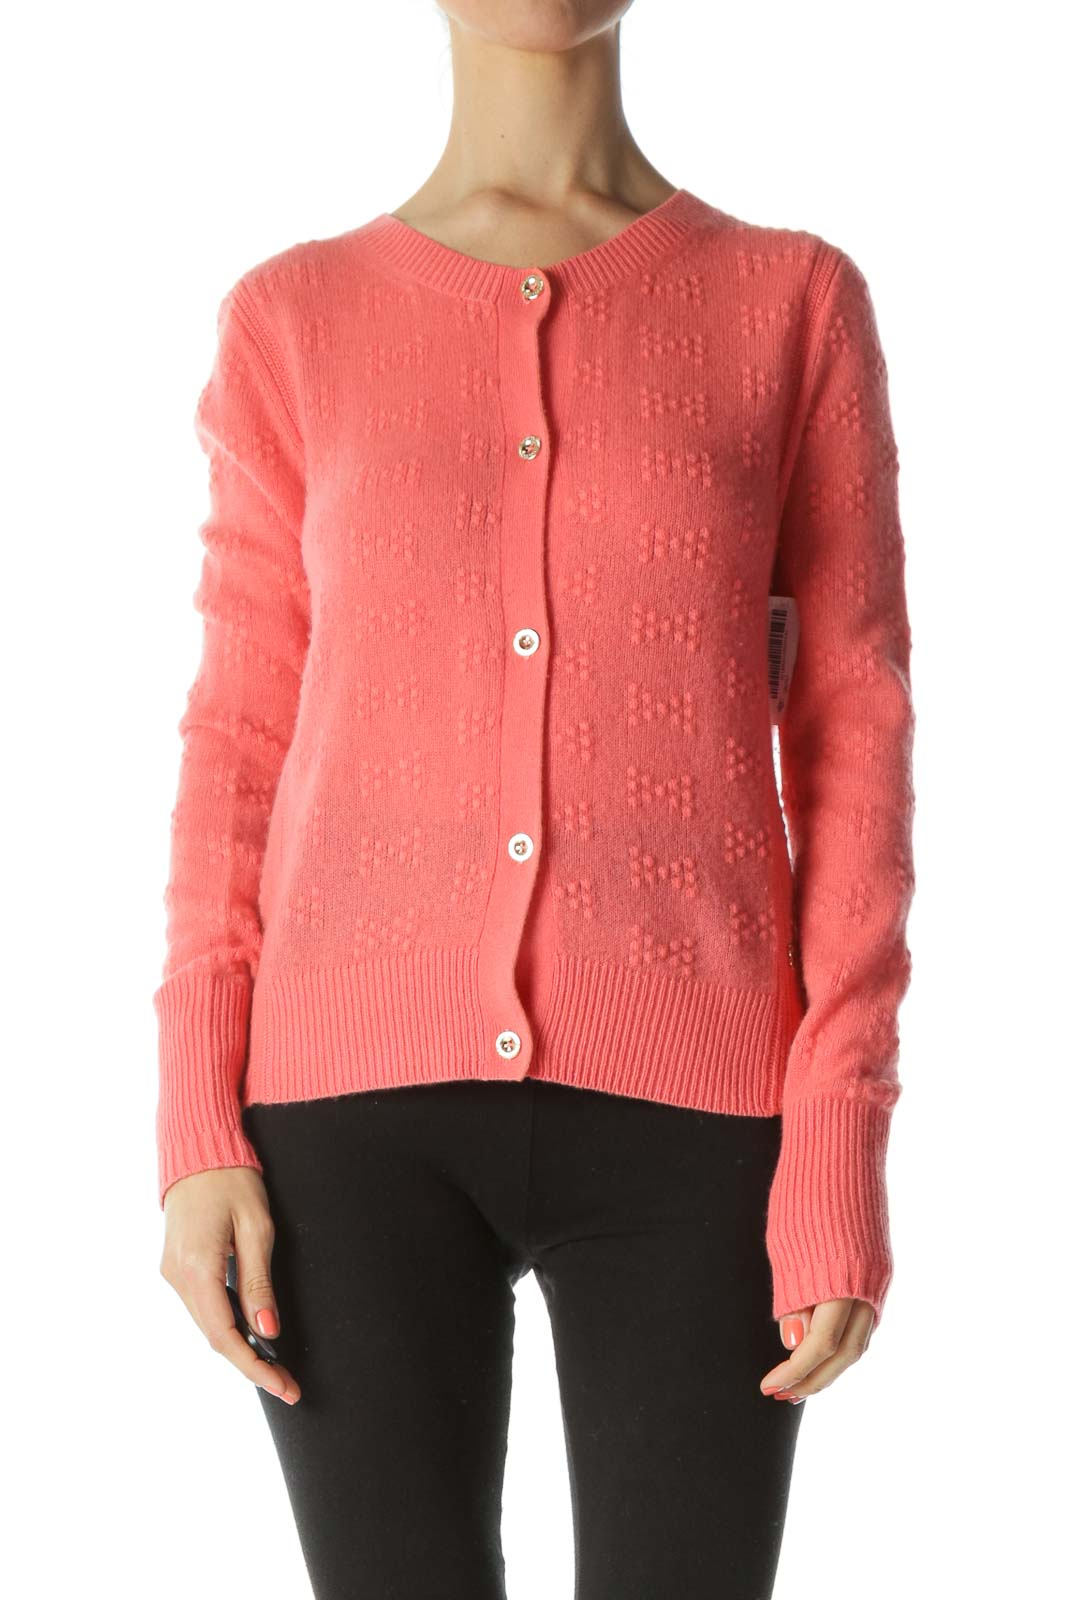 Bright-Orange 100% Cashmere Gold-Buttons Soft Textured-Knit Sweater